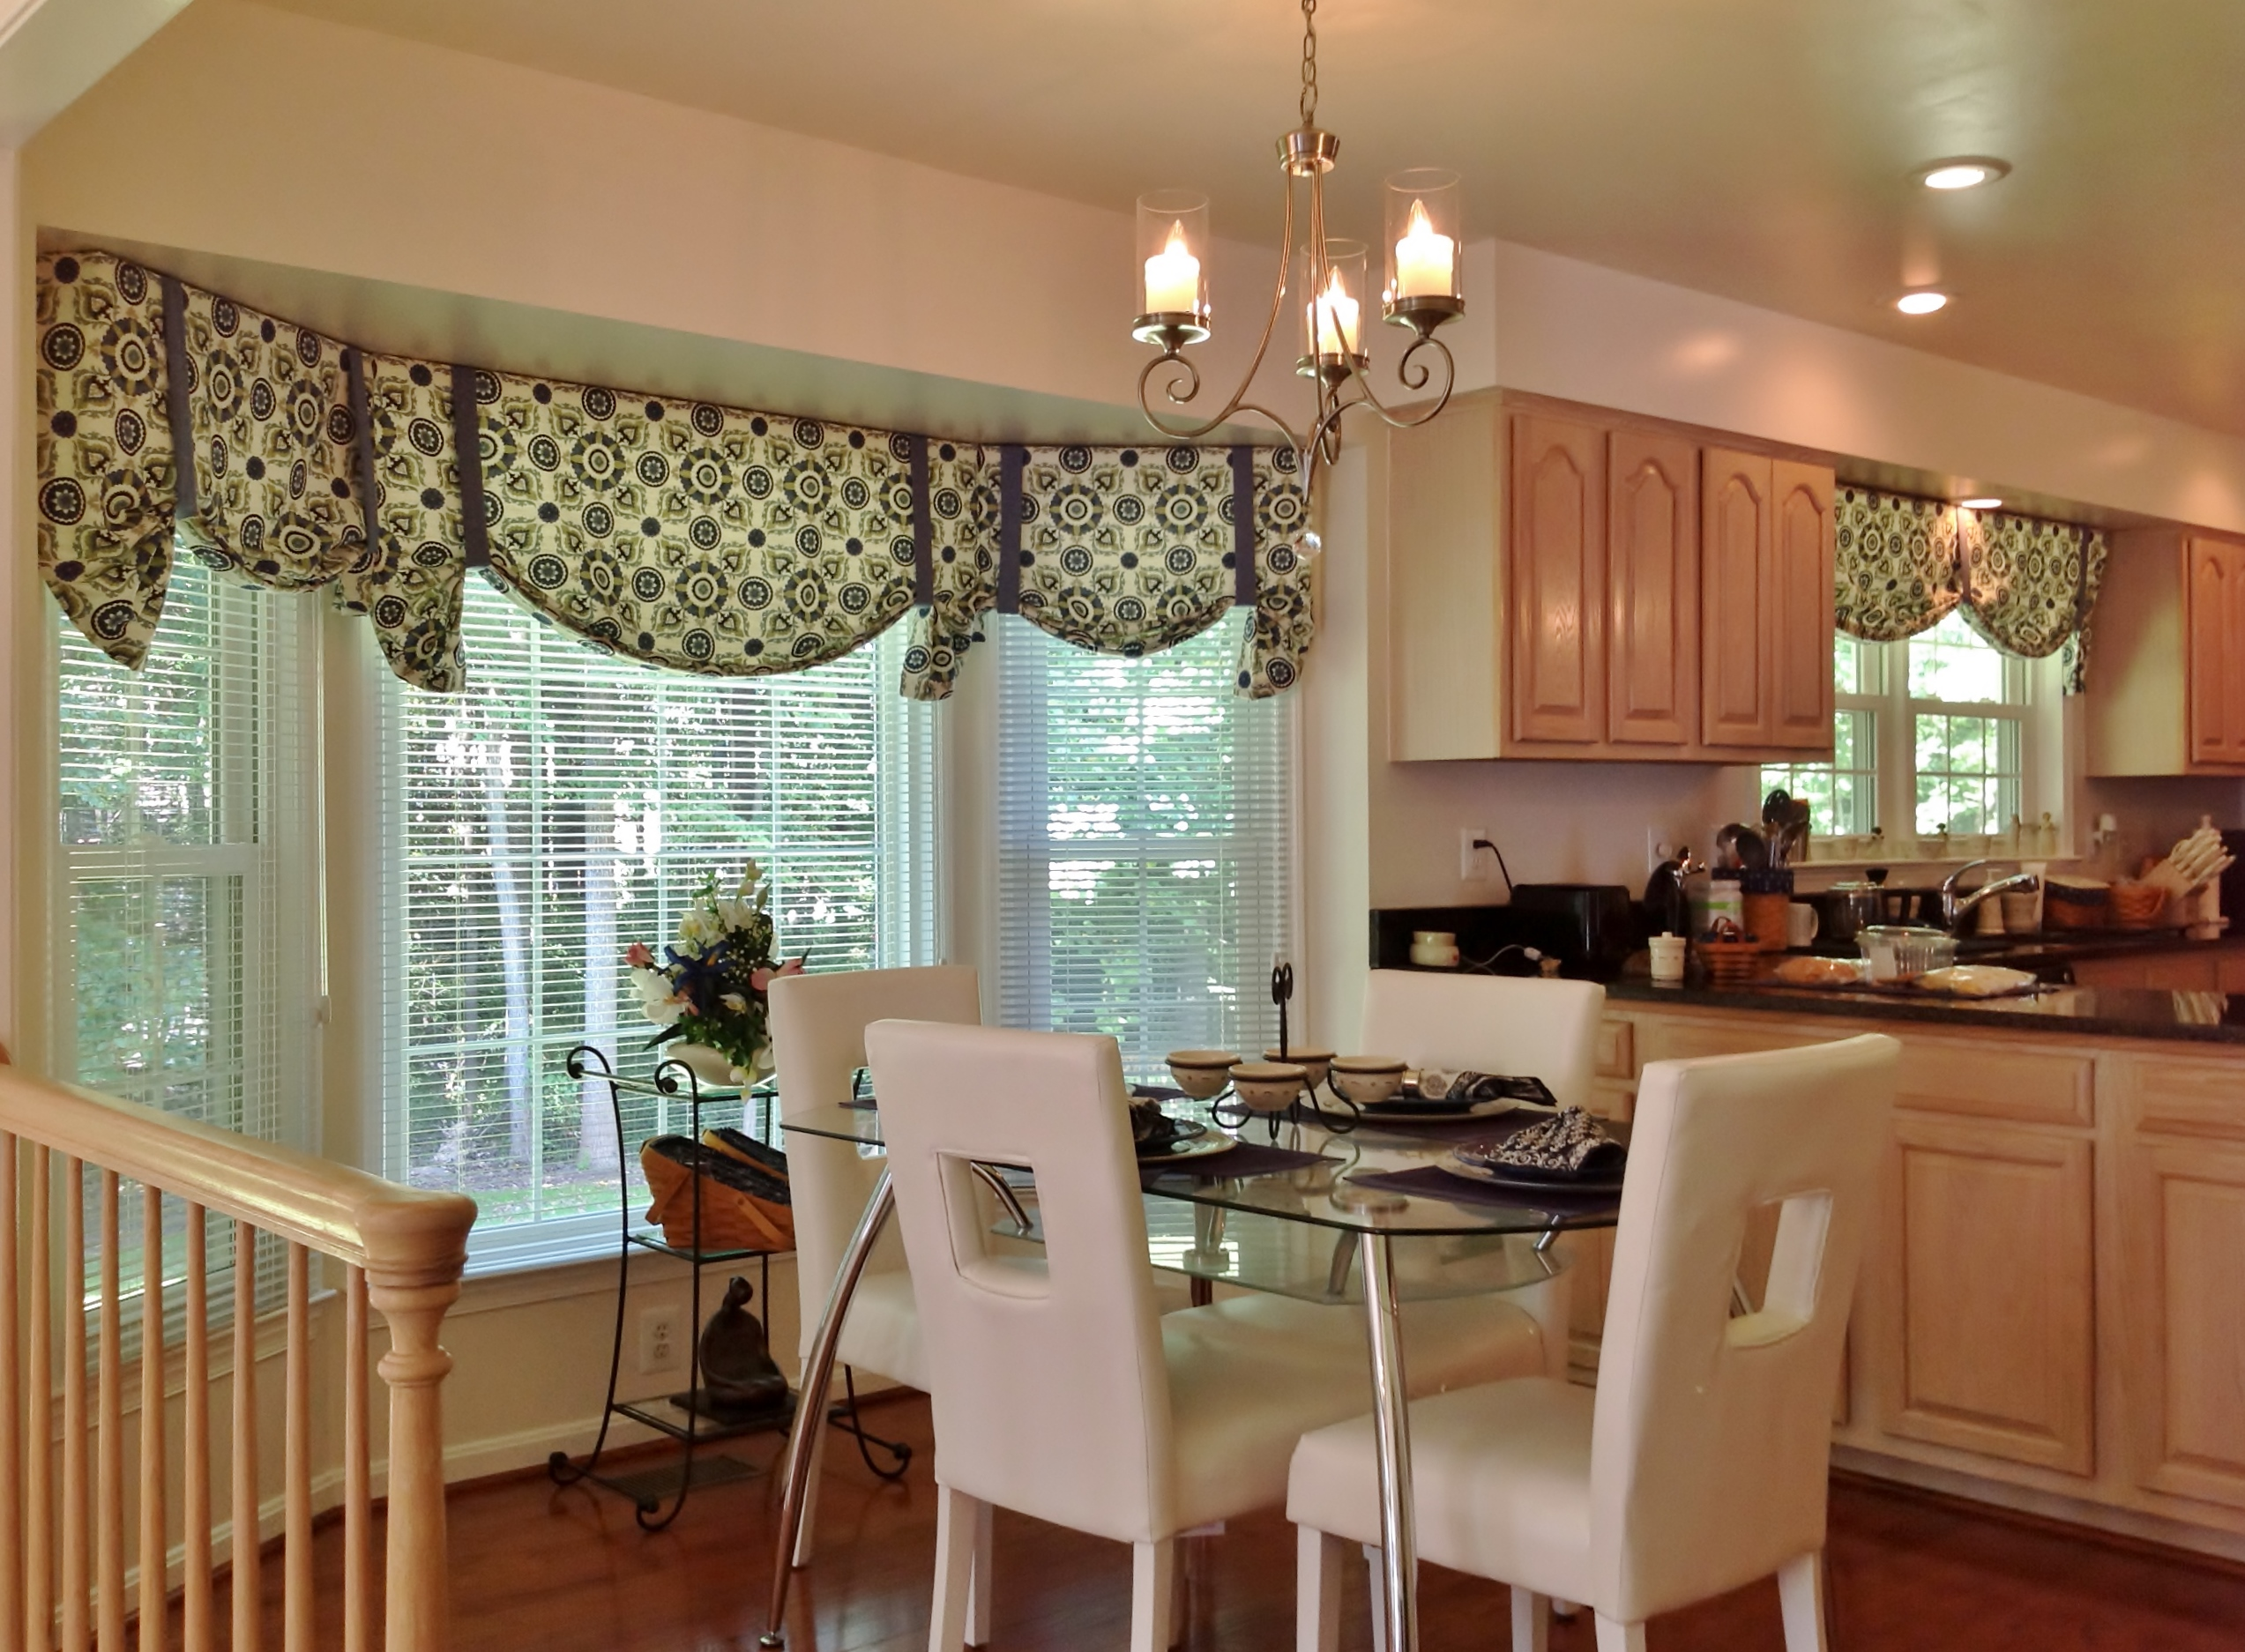 Awesome Contemporary Window Valances With Blinds Decorated On Bay Windows  Together With Modern Dining Room With